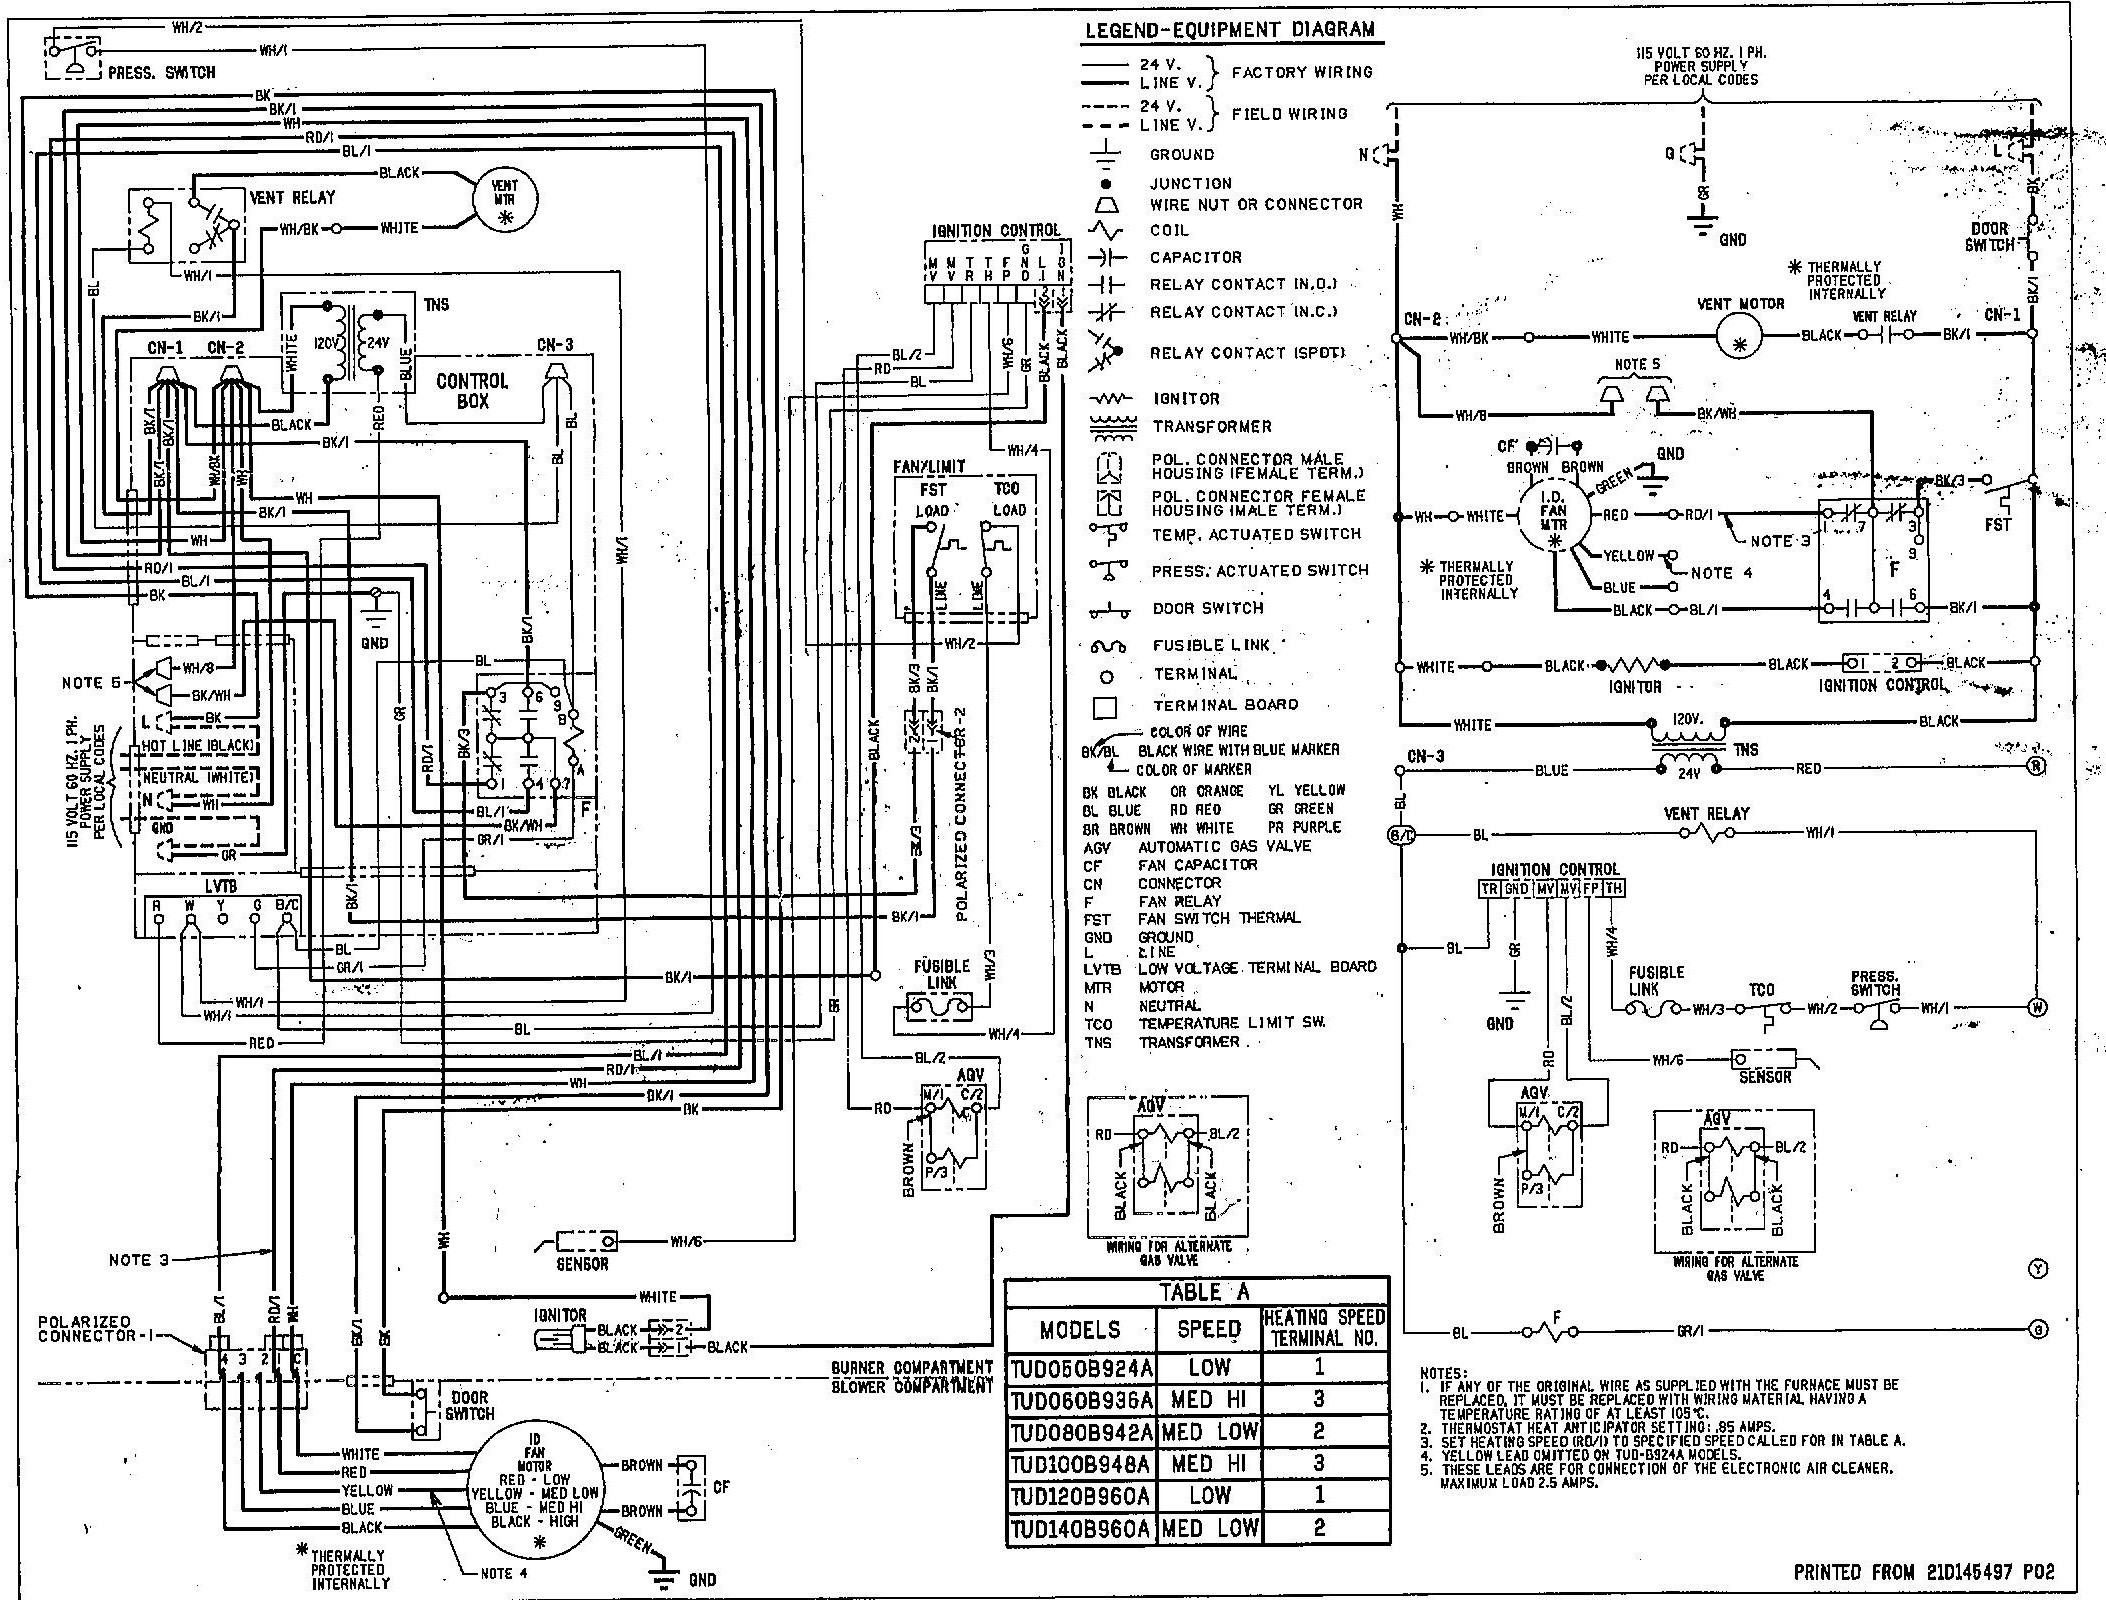 Beckett Oil Burner Parts Diagram thermostat Wiring Diagram Furthermore Oil Furnace Wiring Diagram as Of Beckett Oil Burner Parts Diagram